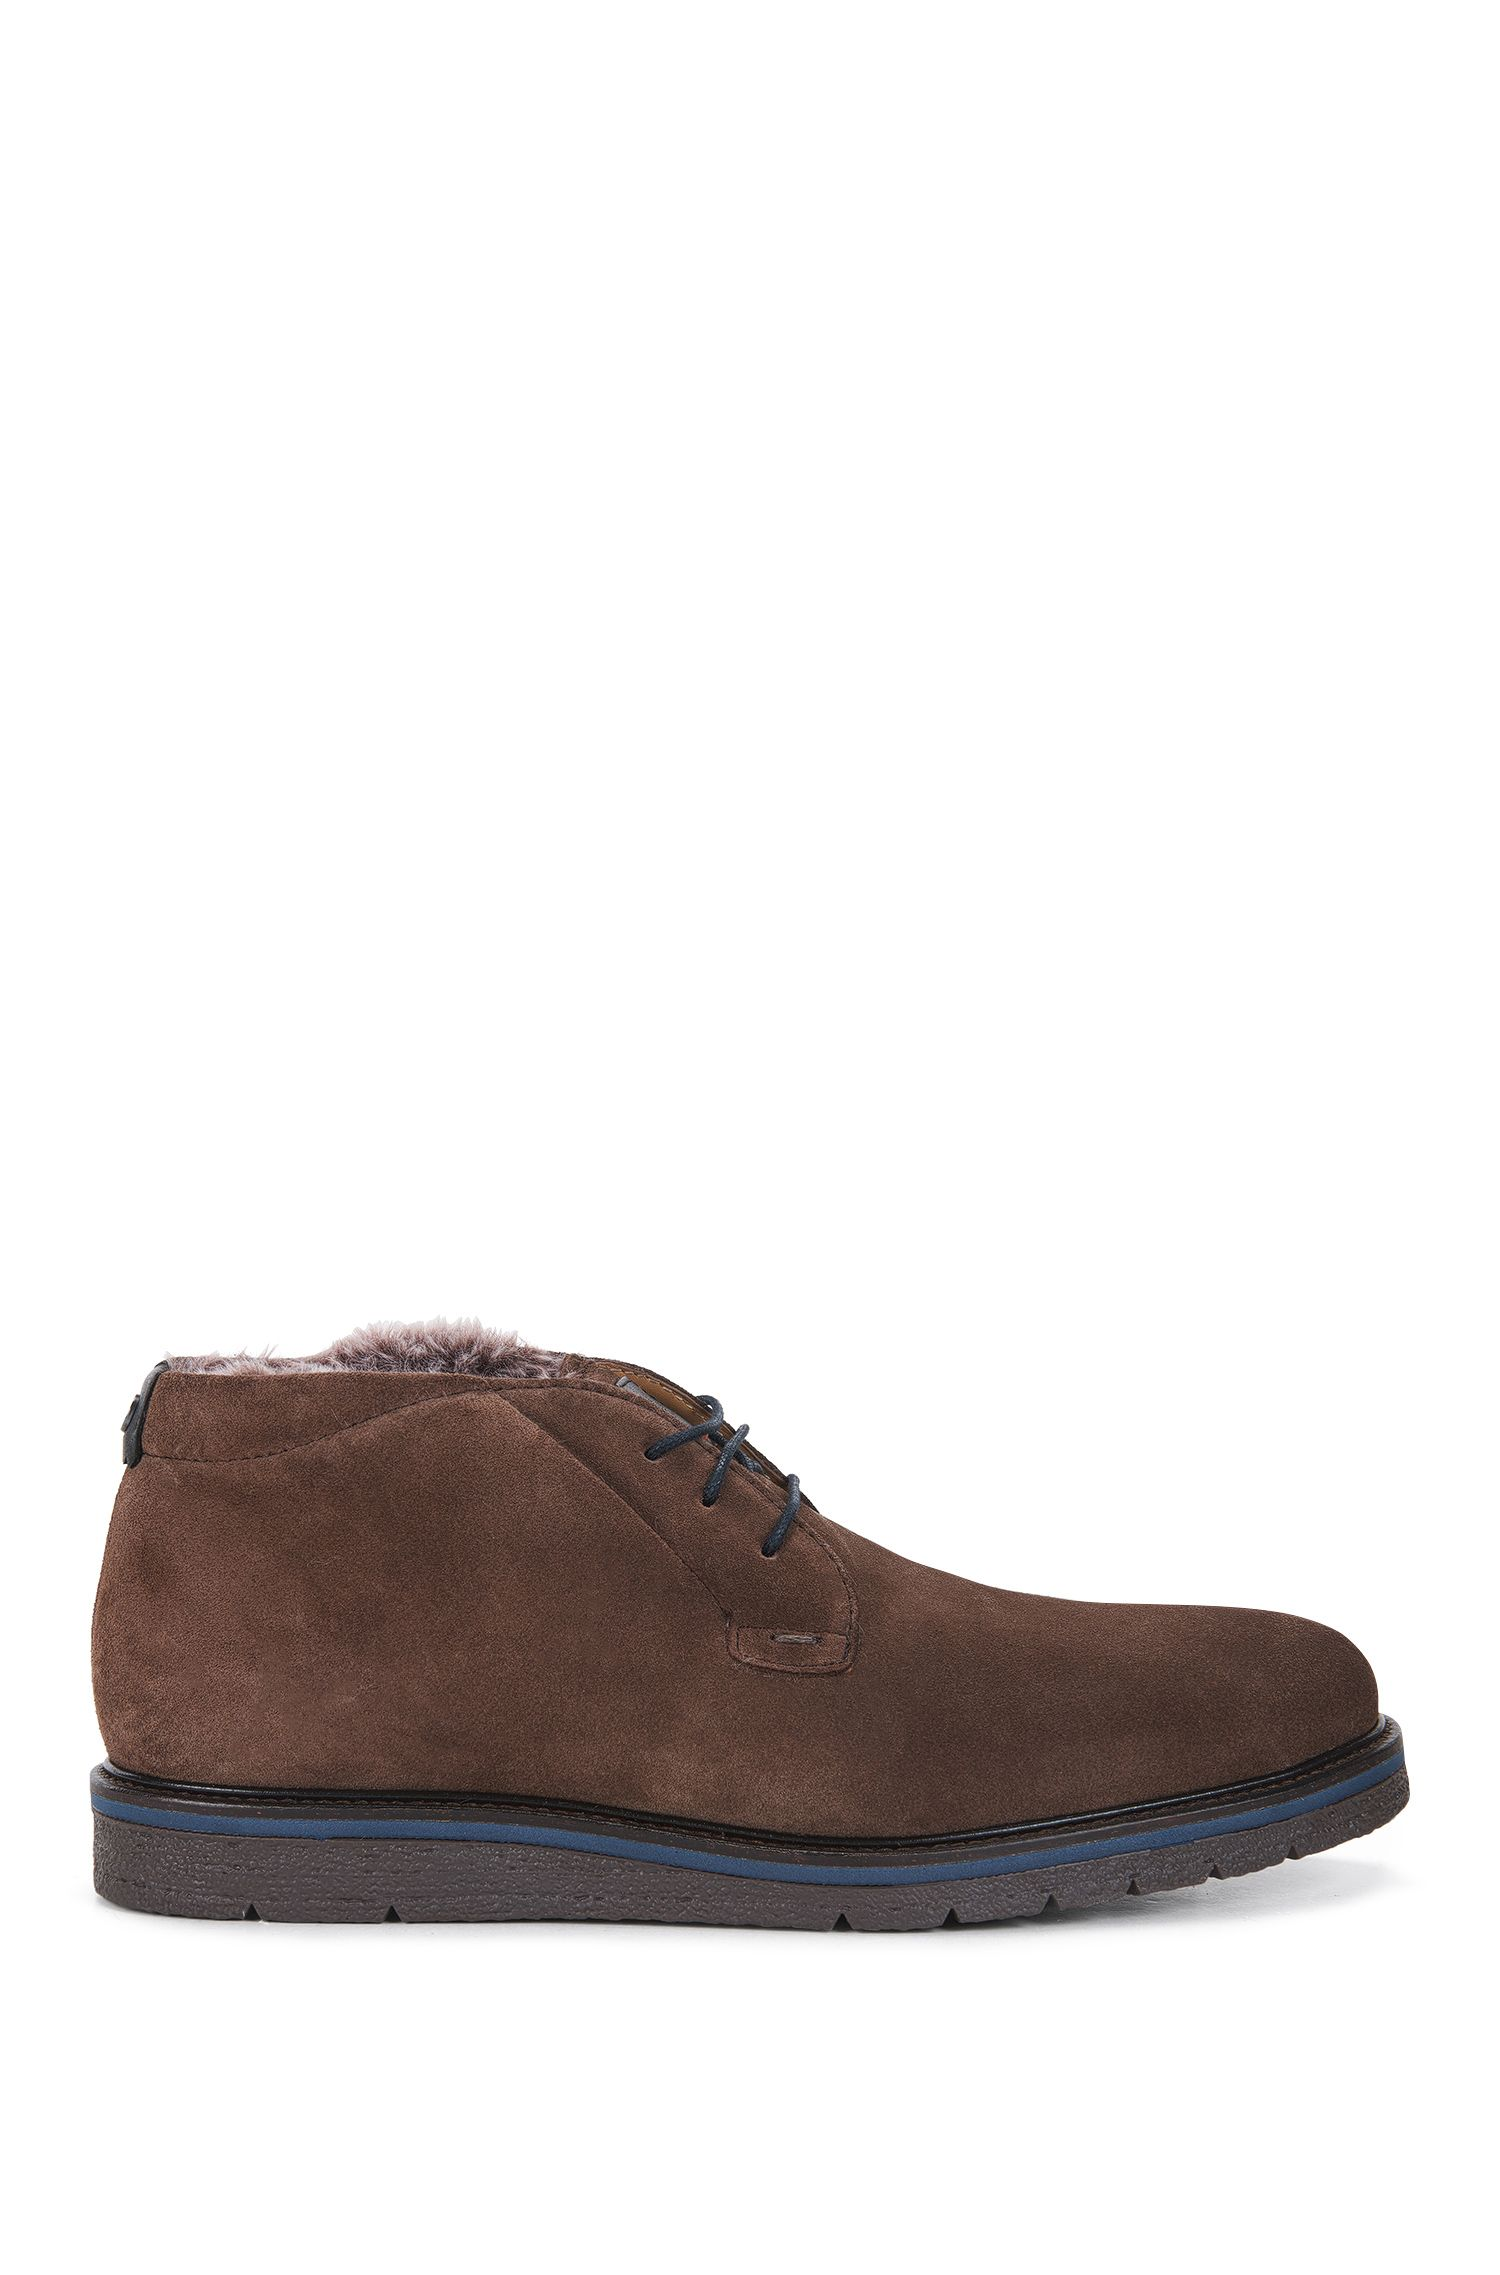 Washed-suede desert boots with faux-fur lining